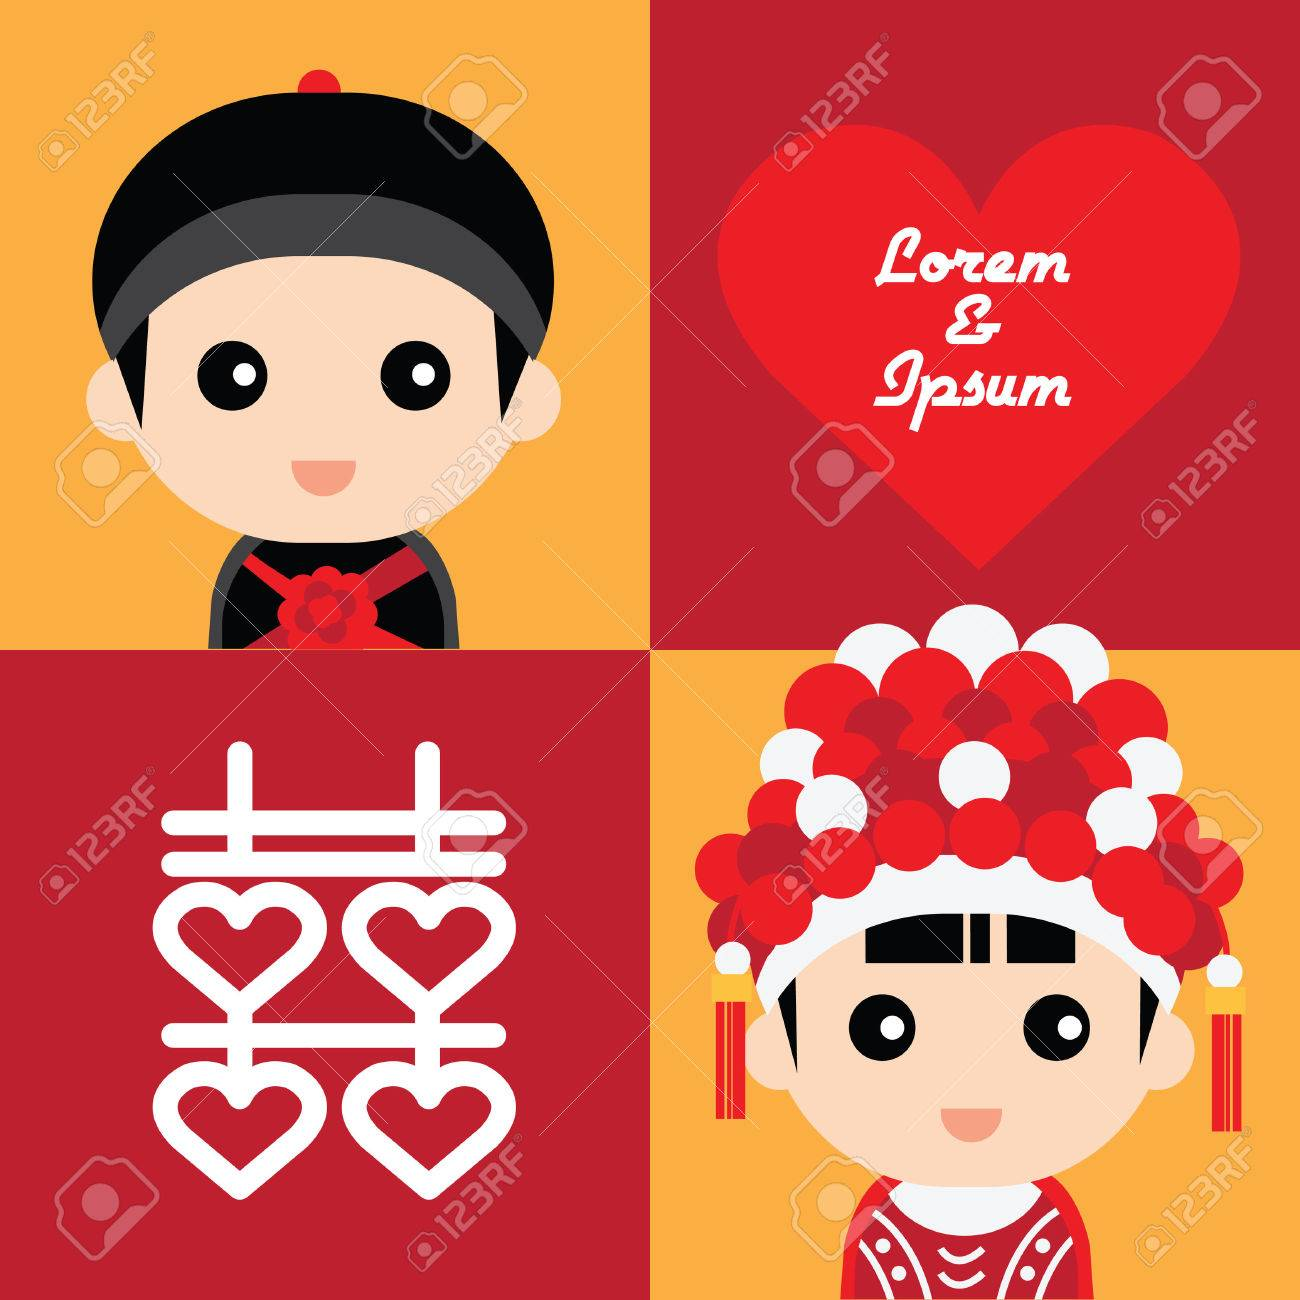 Illustration of cute couple in traditional chinese wedding costume - 35850491